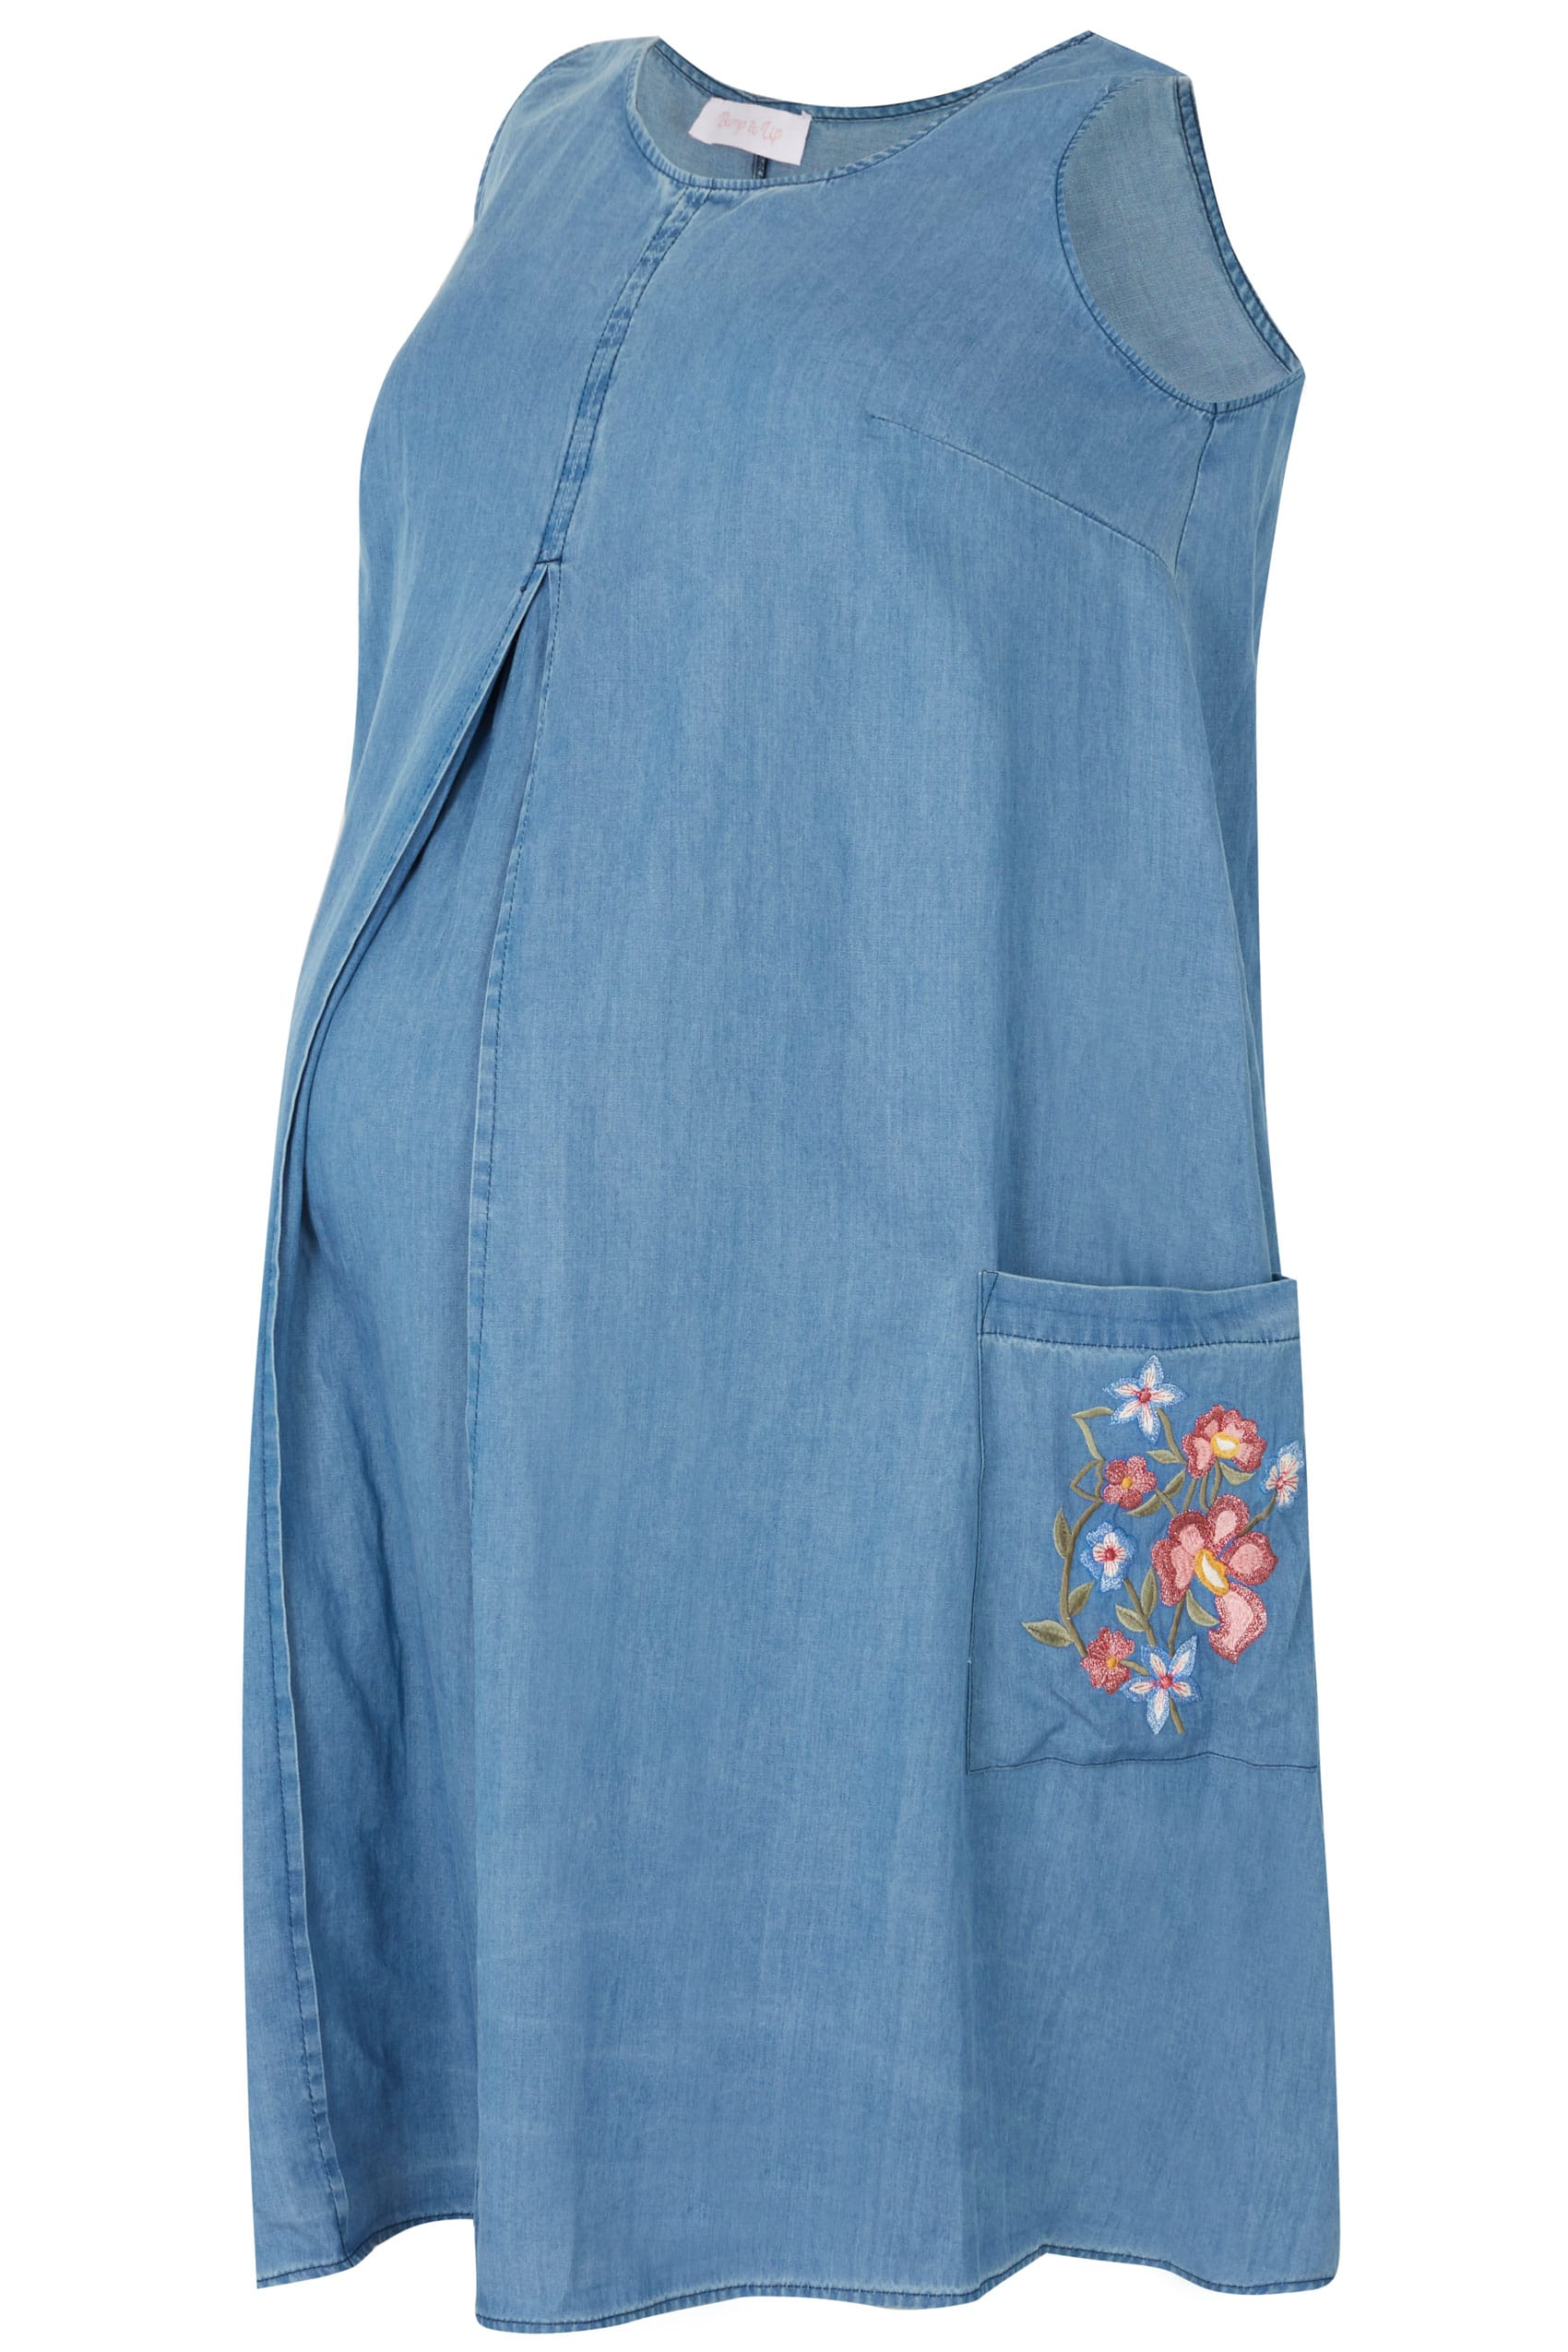 a21fe4f486c BUMP IT UP MATERNITY Blue Chambray Pleated Dress With Floral Embroidery